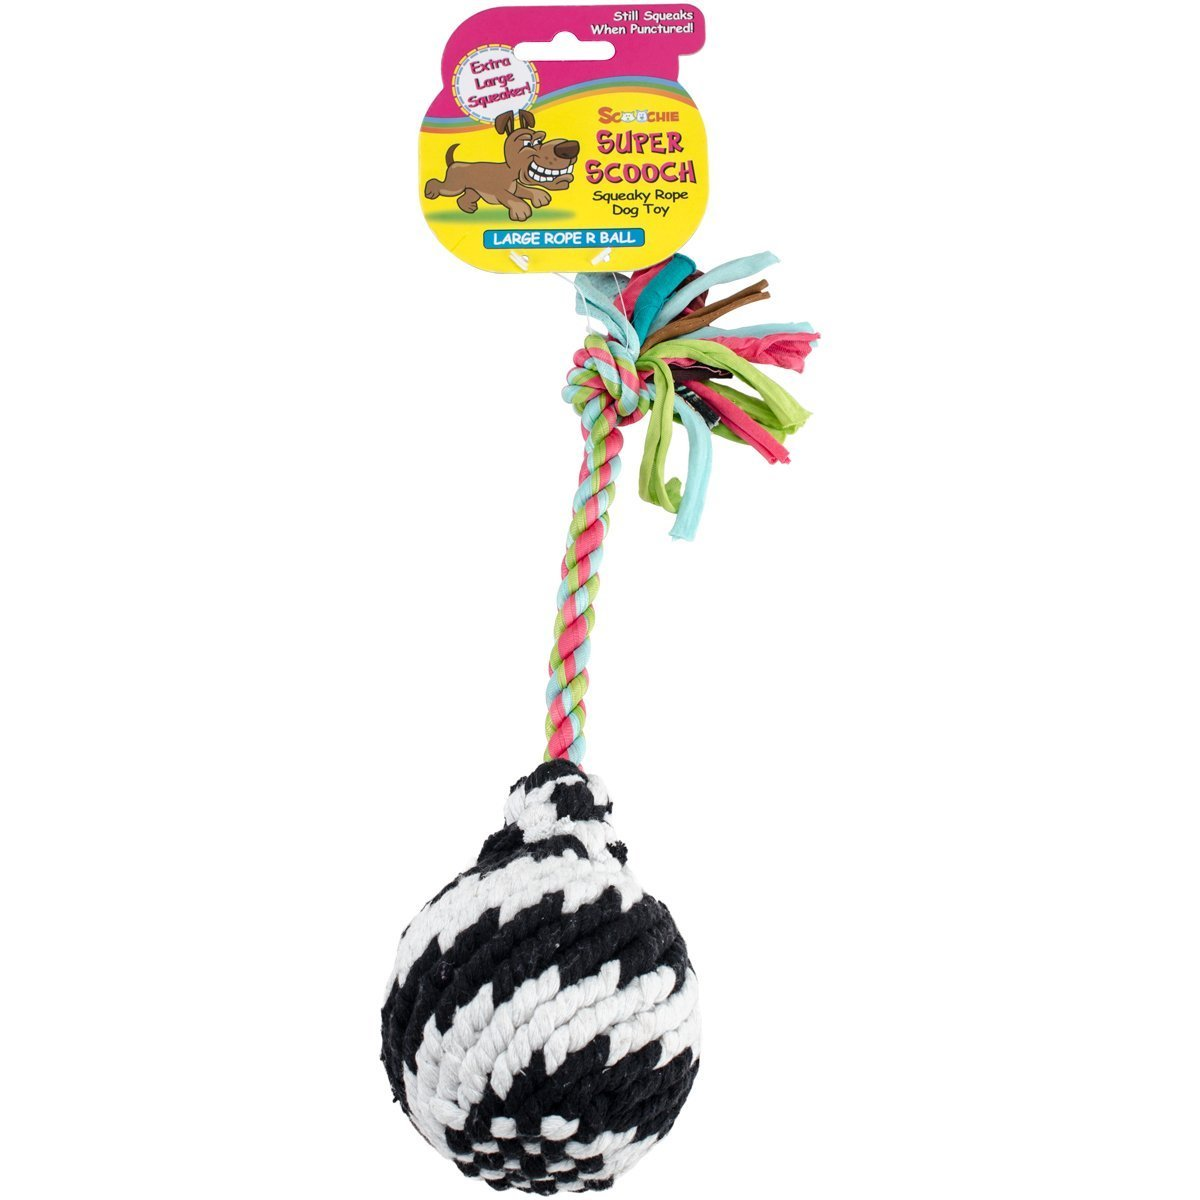 Super Scooch Squeak Rope R Ball Dog Toy 9-Small